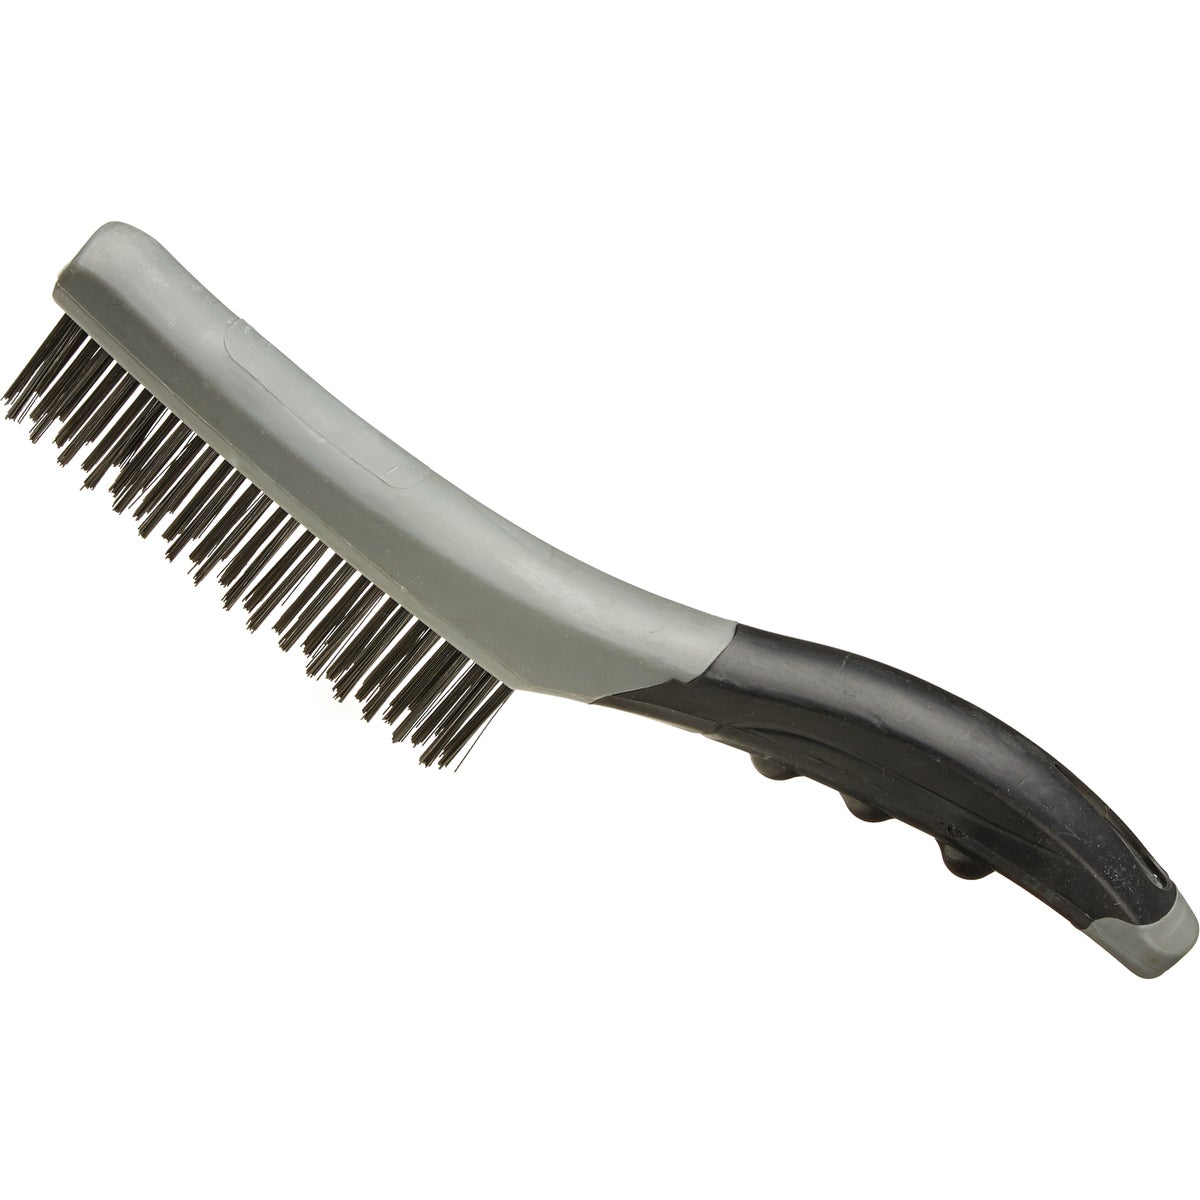 SHOE HANDLE WIRE BRUSH - 46802 by Hyde Mfg Co